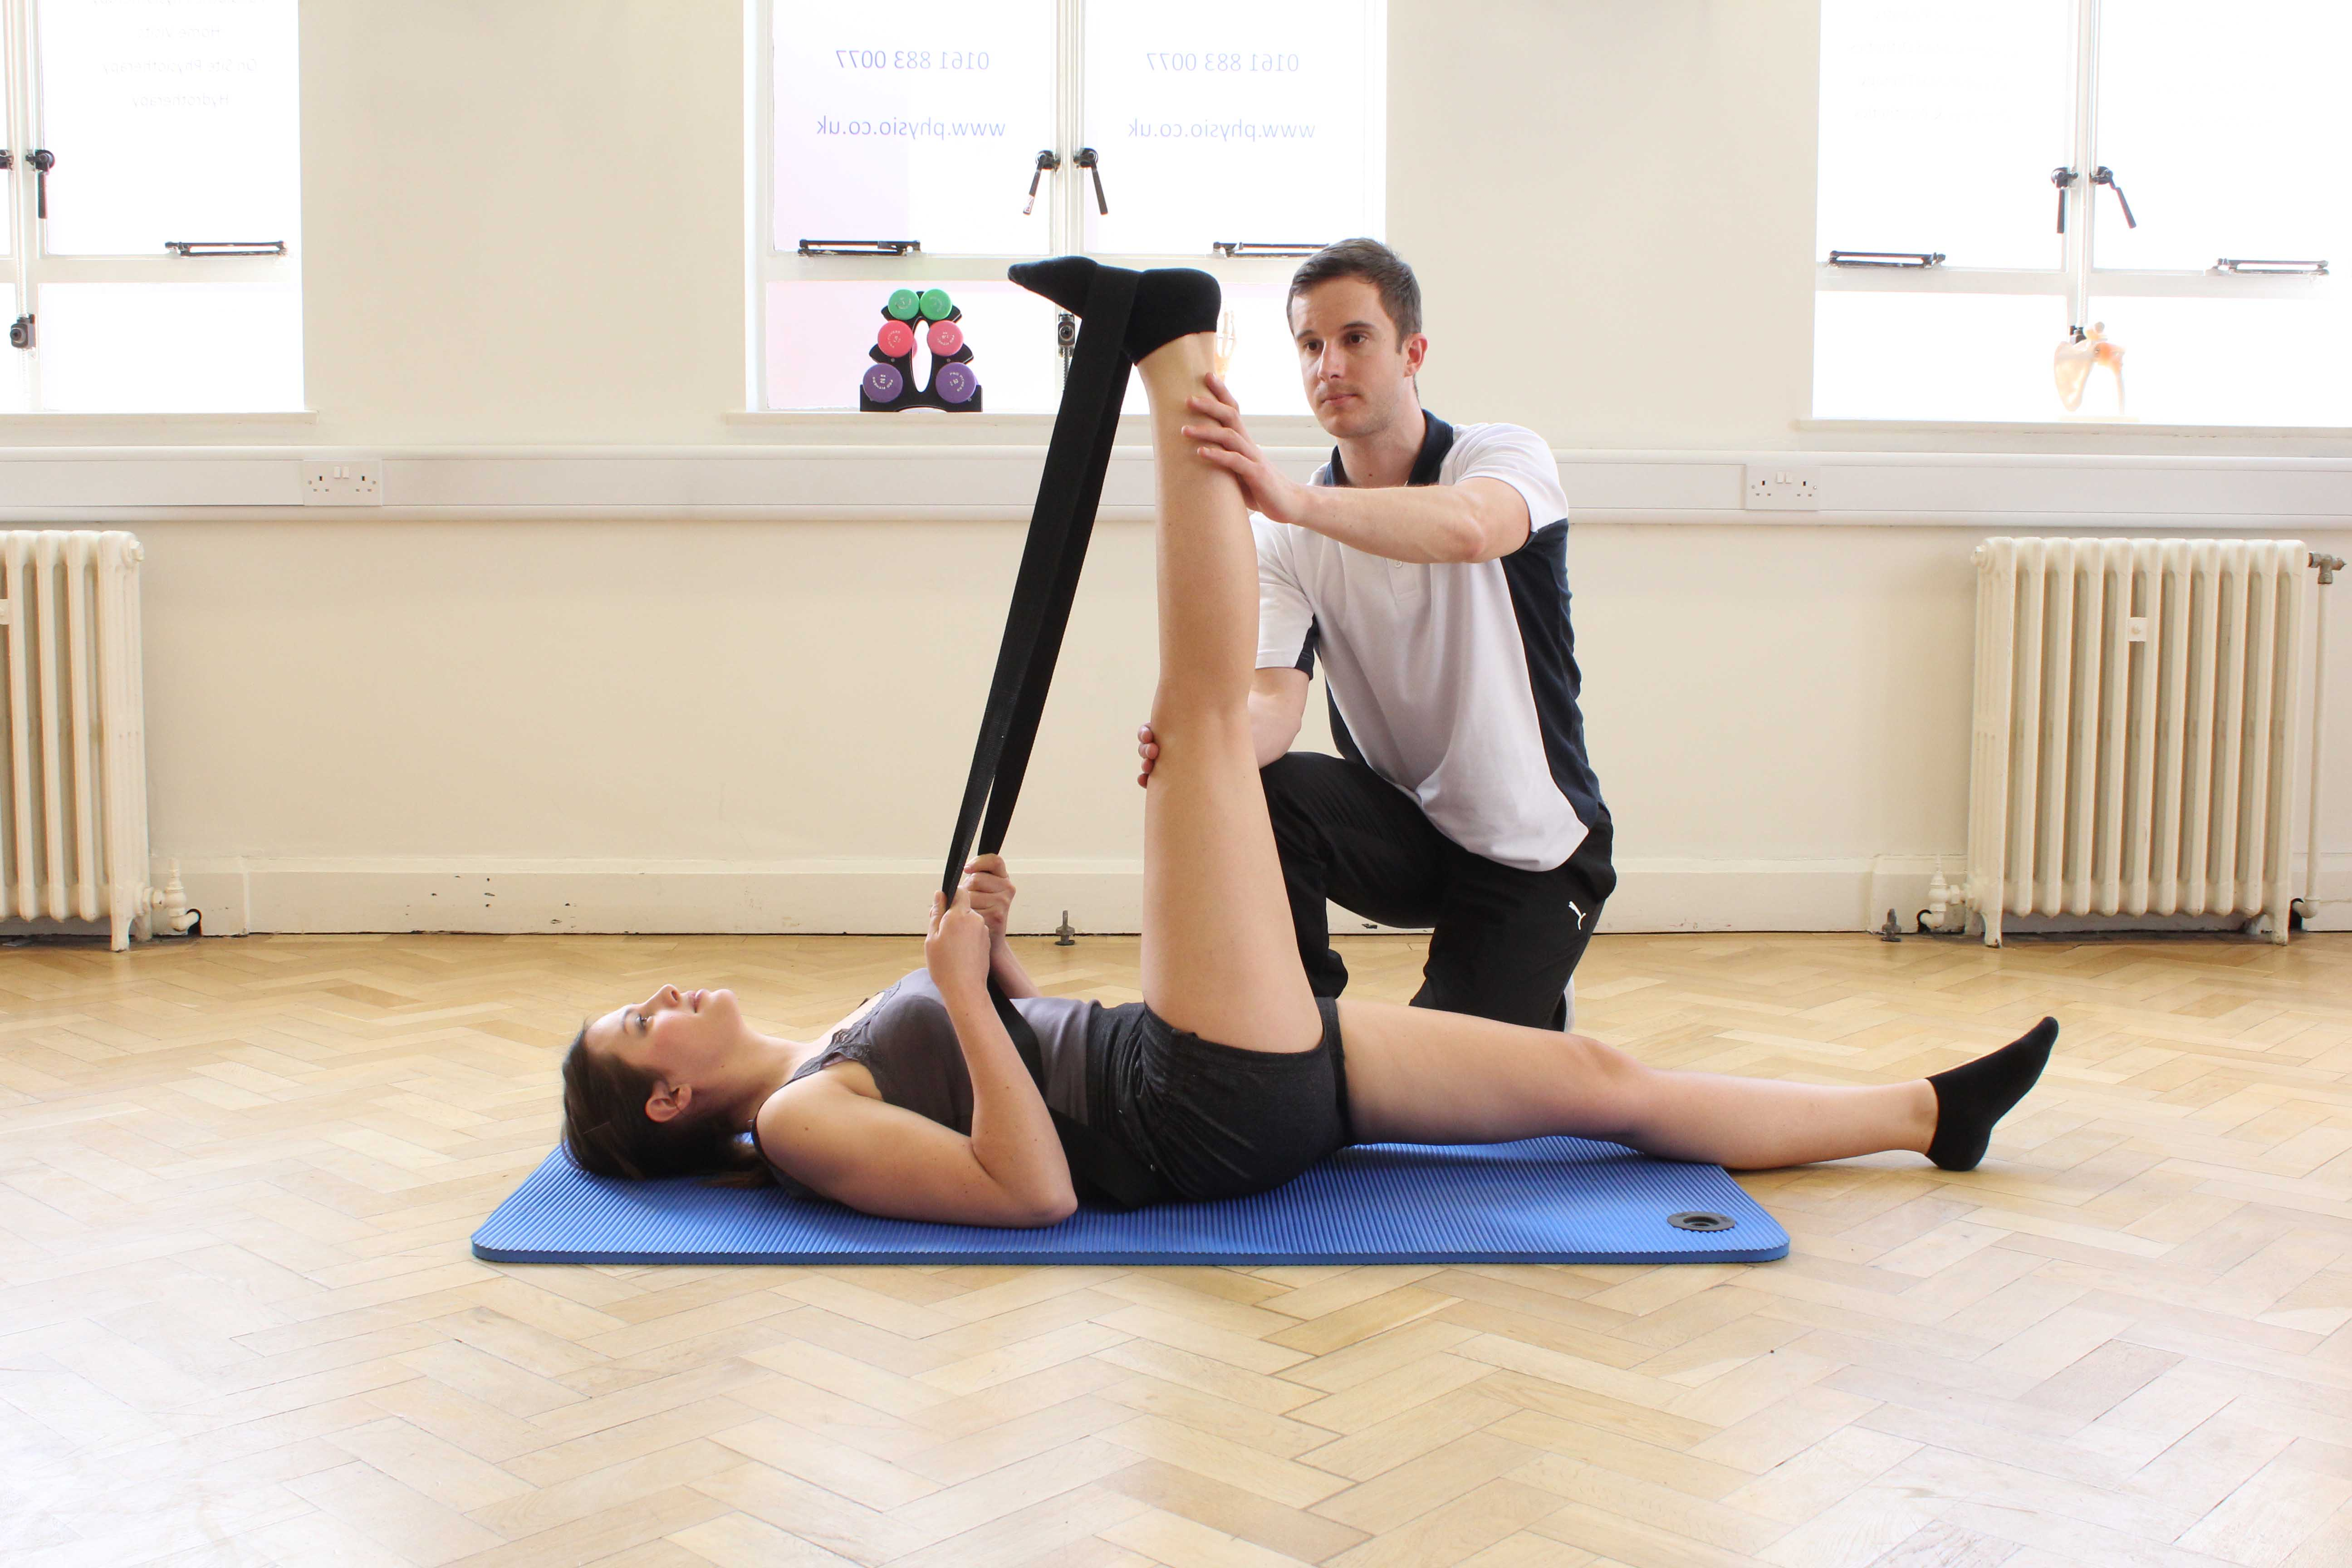 Using a resistance band under supervision of a physiotherapist to stretch the calf and hamstring muscles